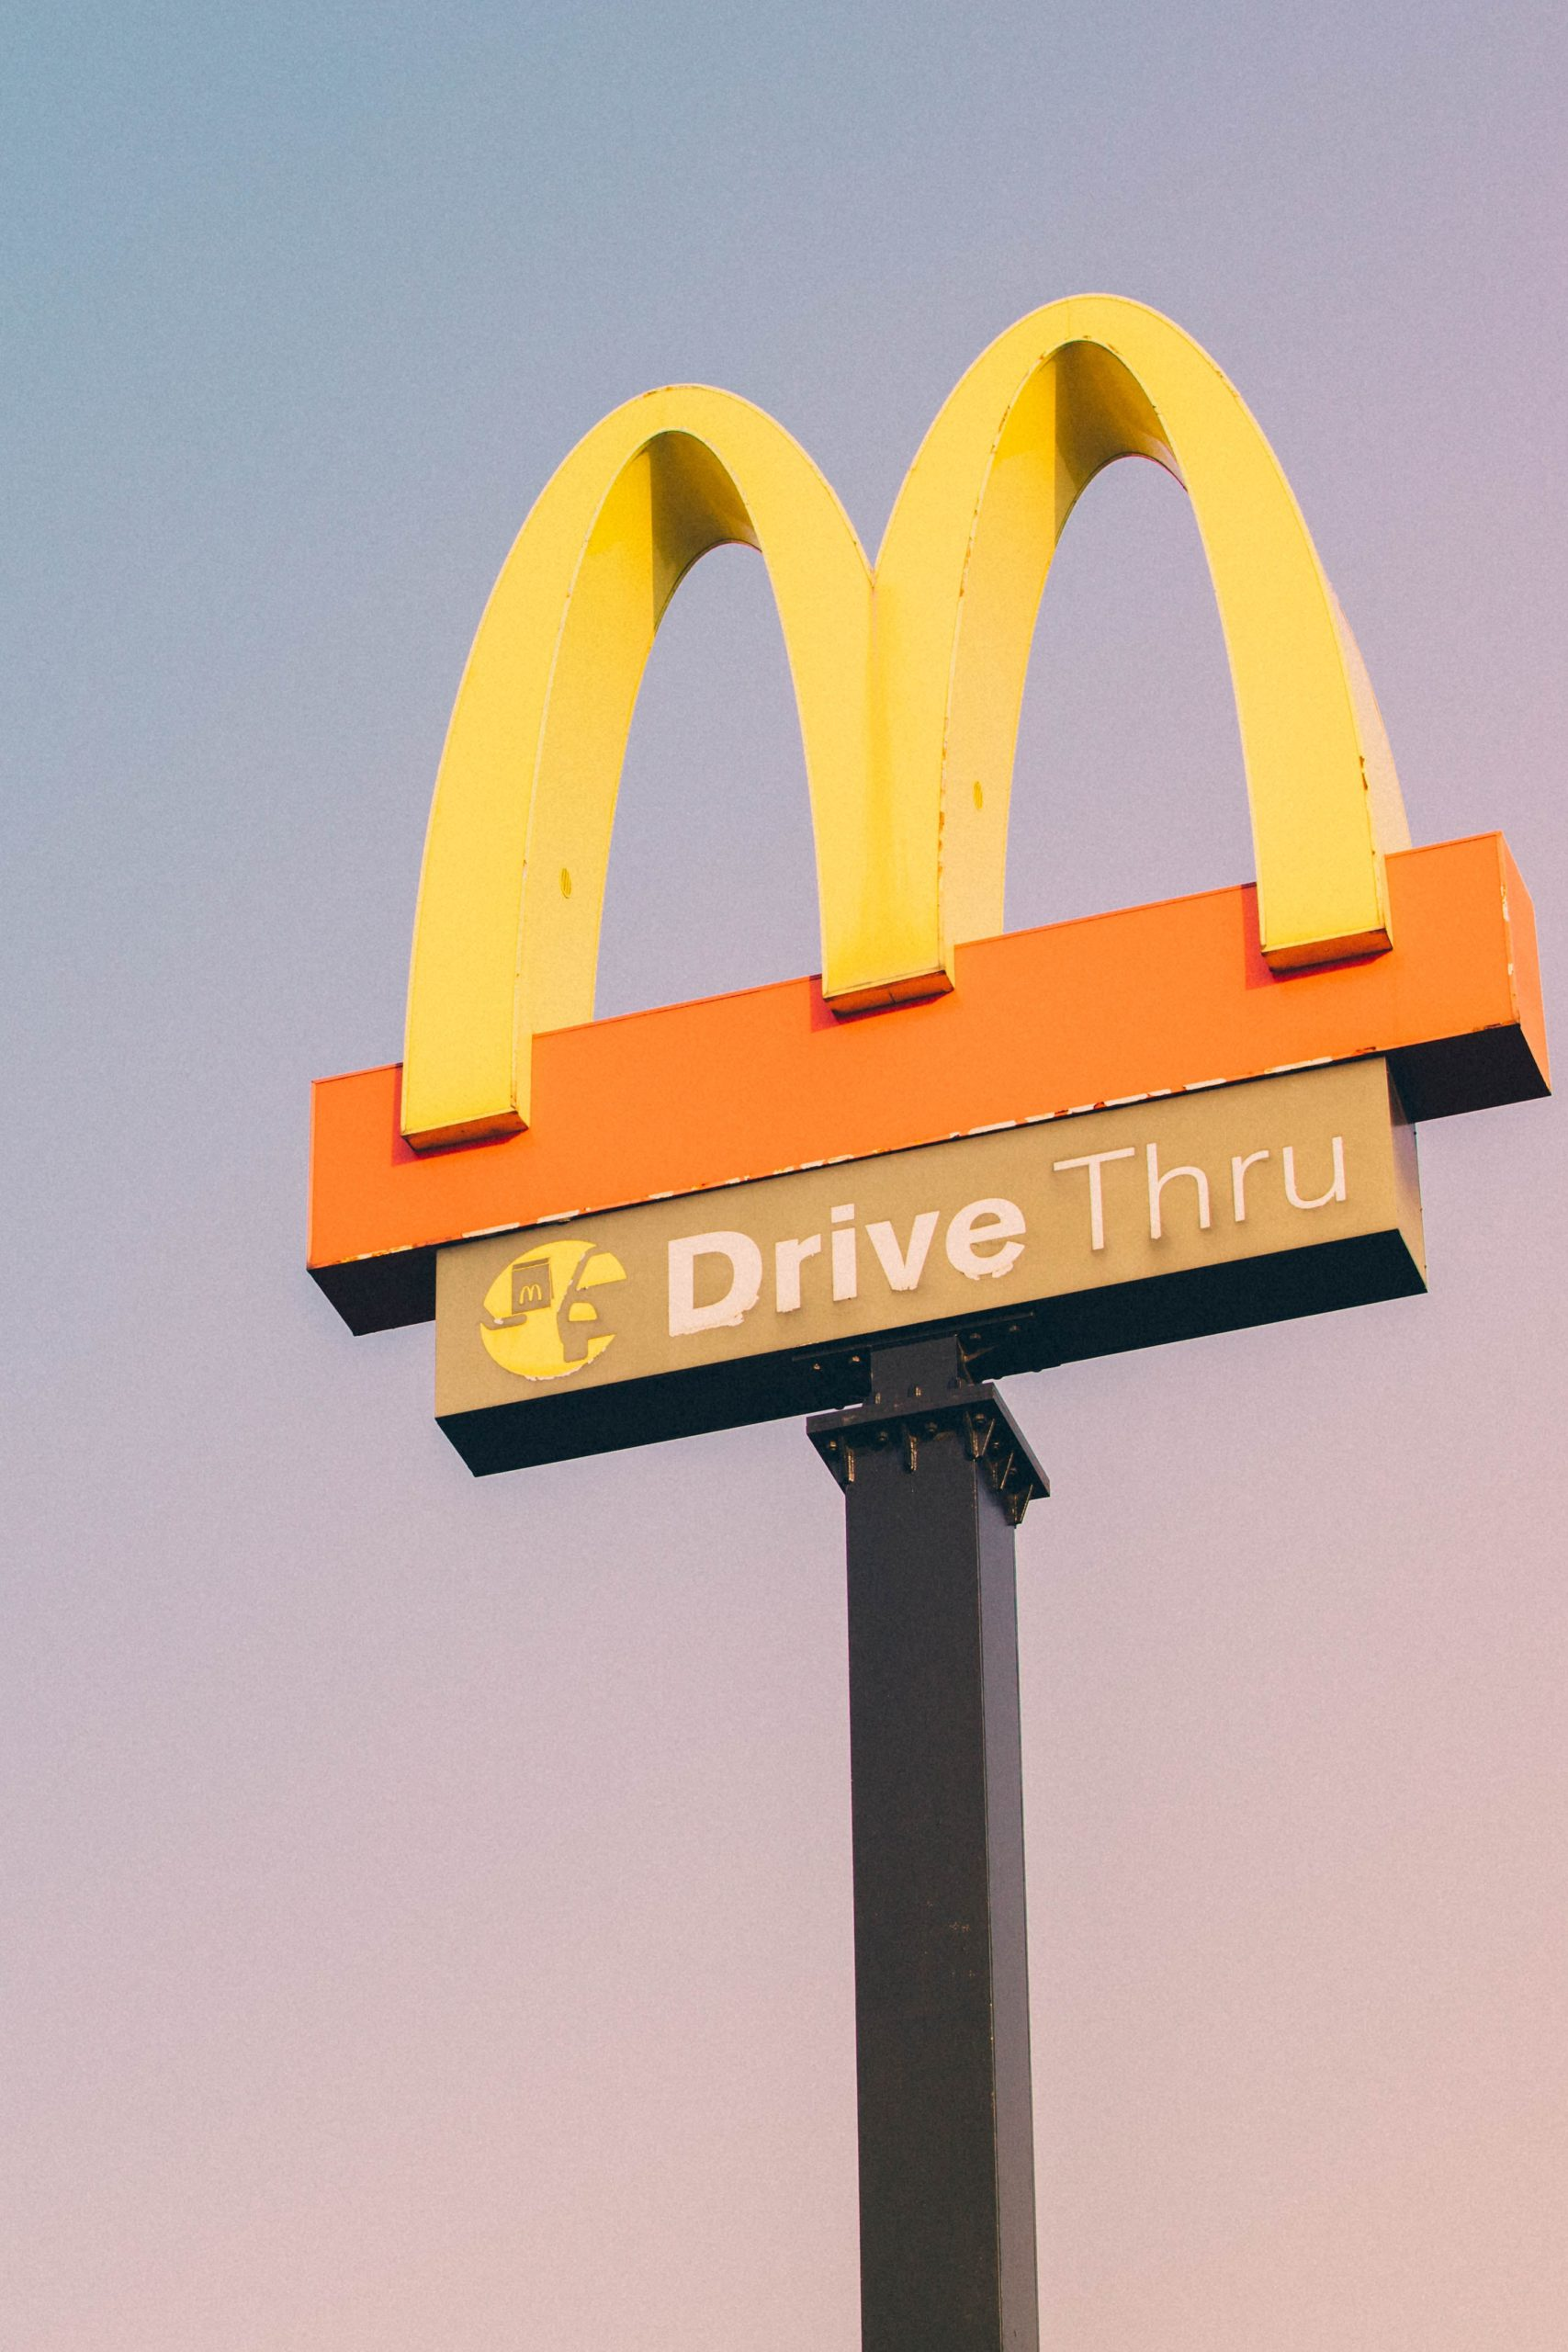 Restaurant industry drive-thru